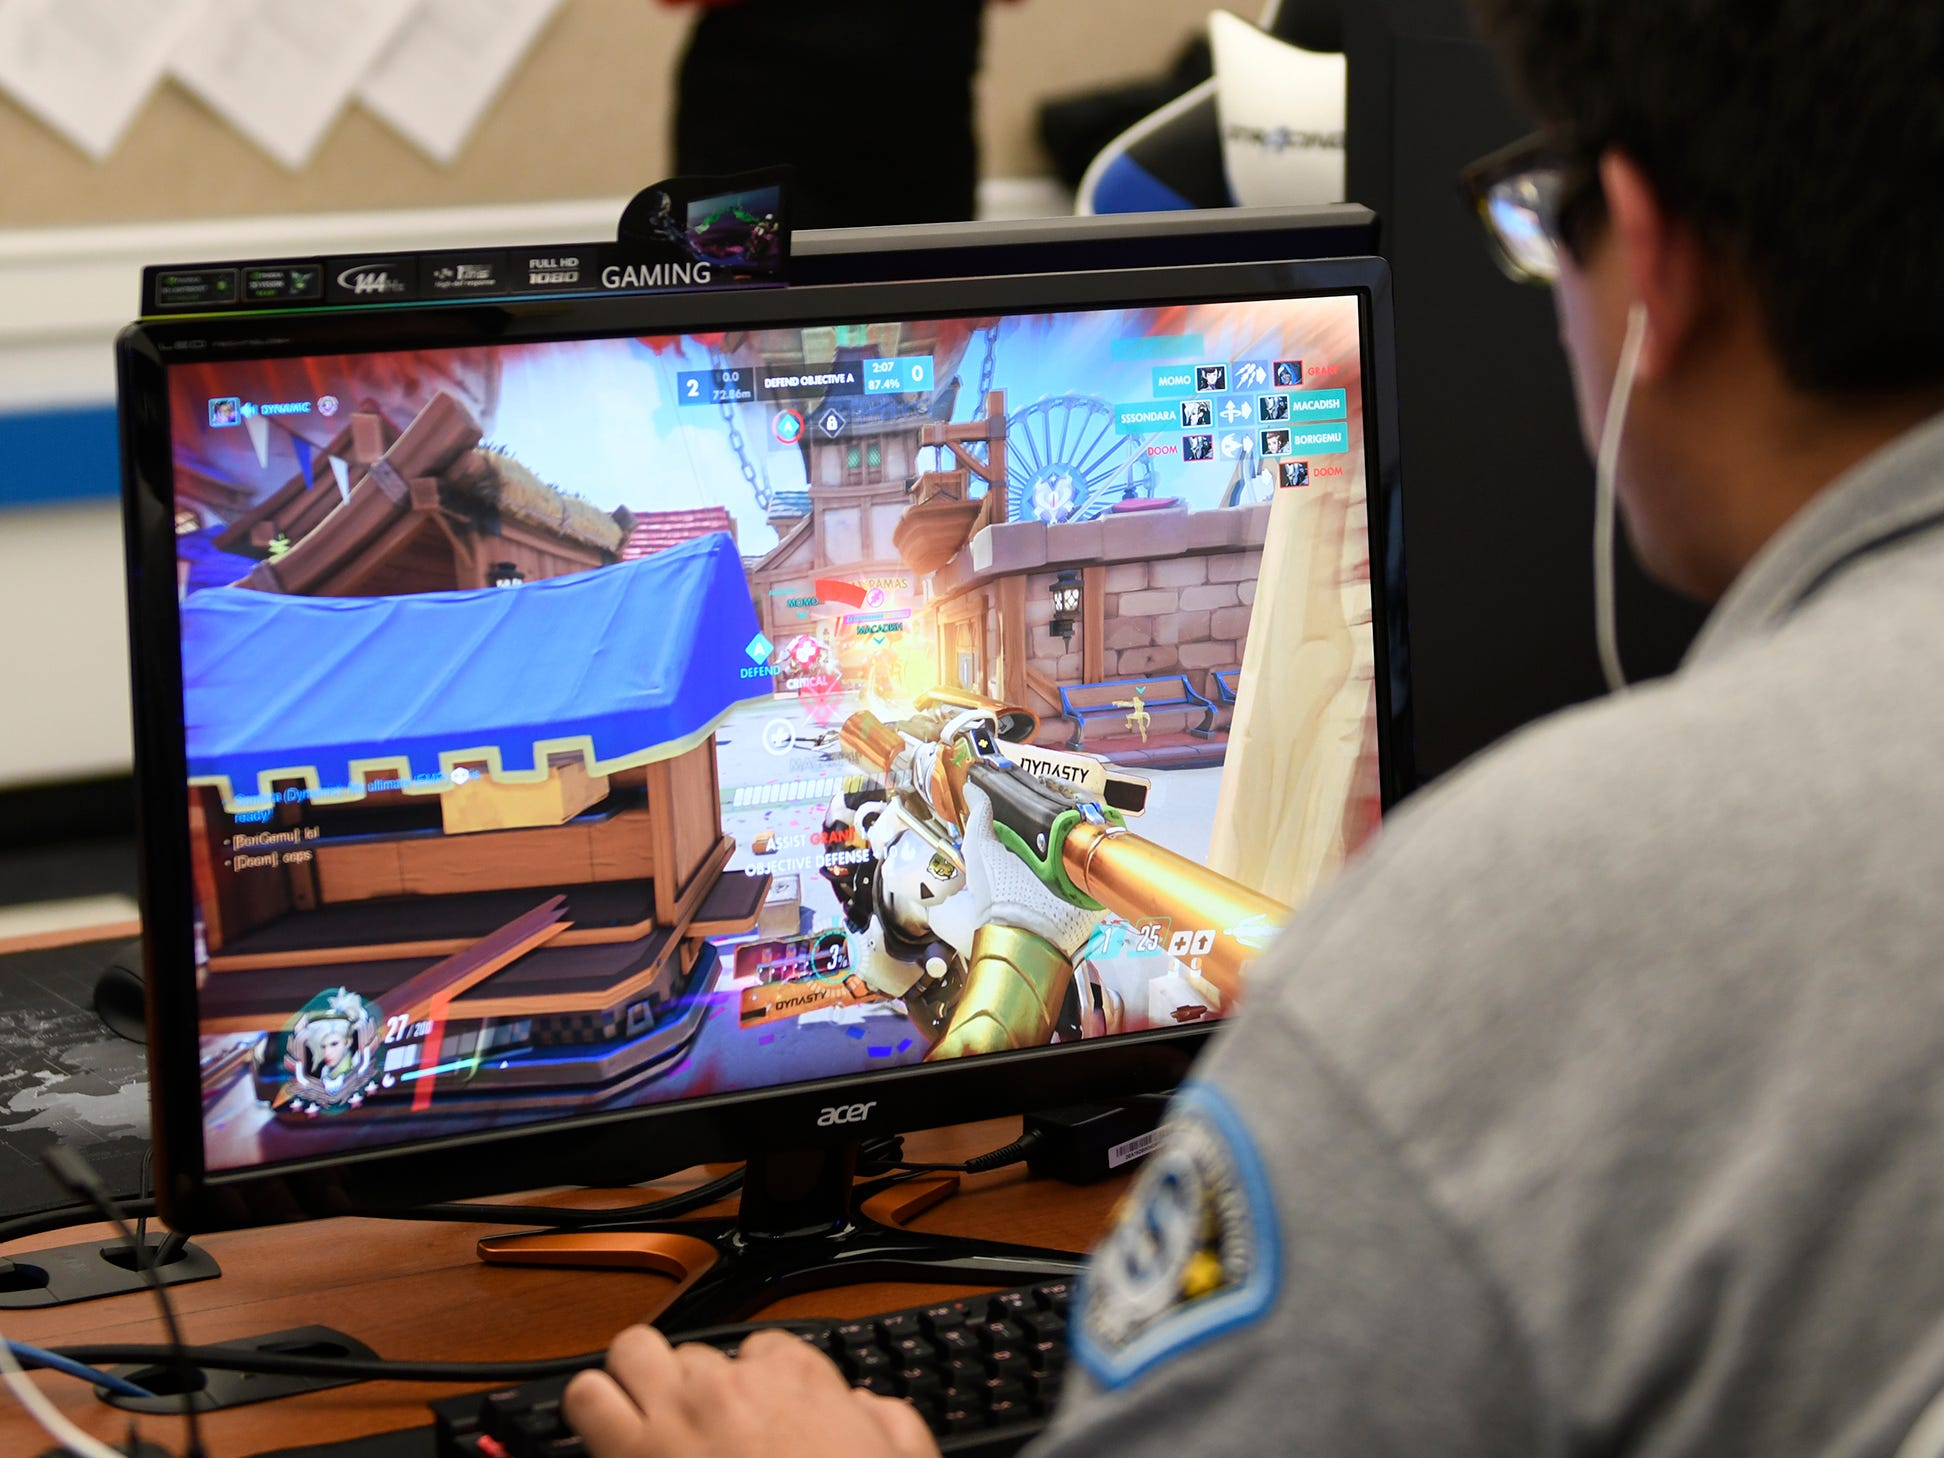 Stockton students hone their gaming skills in the university's new Esports facility on Tuesday, Feb. 26, 2019. The new room boasts 15 state-of-the-art machines designed for competitive teams to play Fortnite, Overwatch, League of Legends, and Smash Brothers Ultimate as part of the Eastern College Athletic Conference.